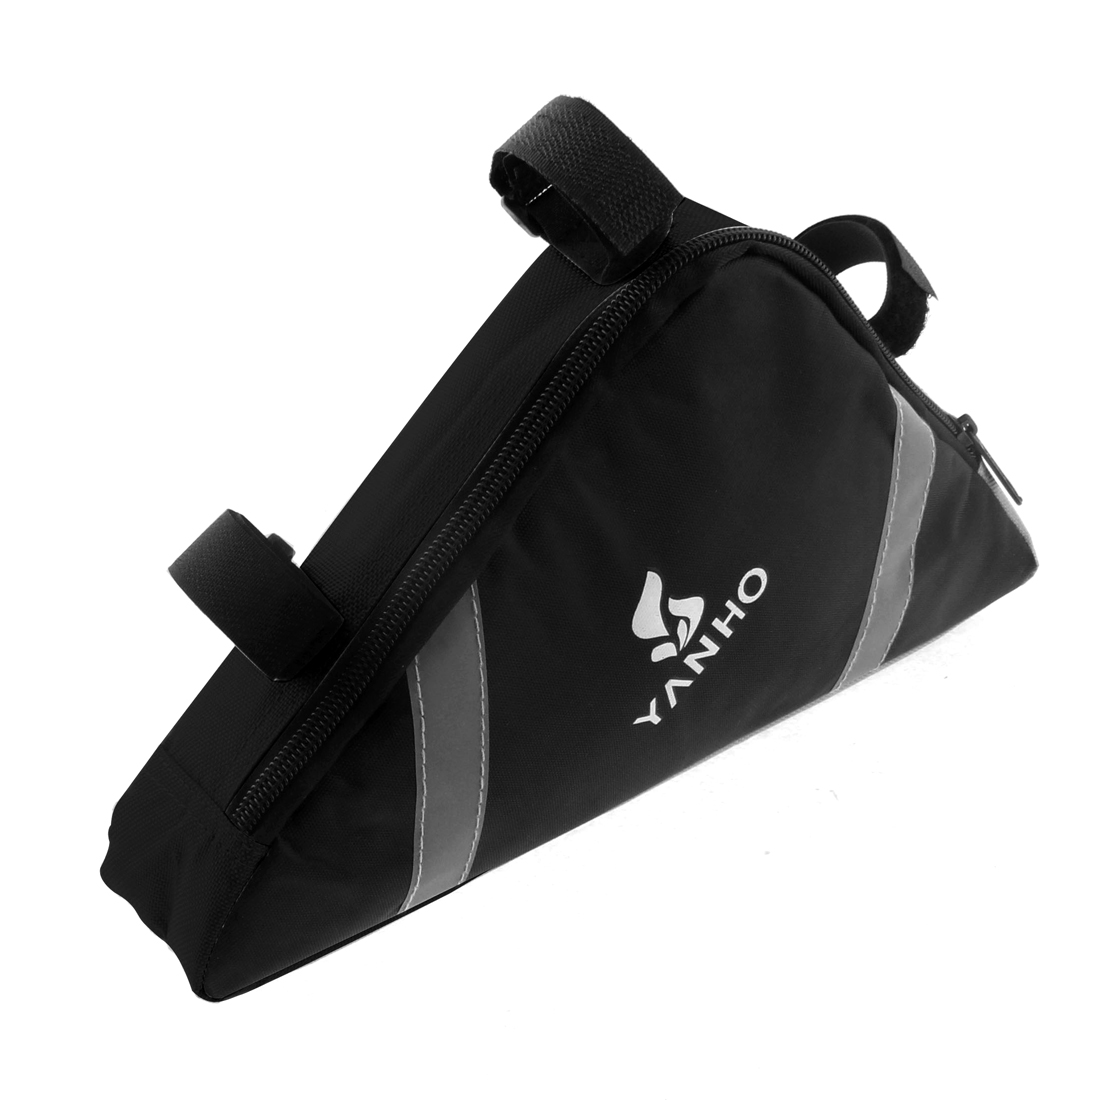 Bike Cycling Triangle Front Frame Bag Pannier Case Holder Black